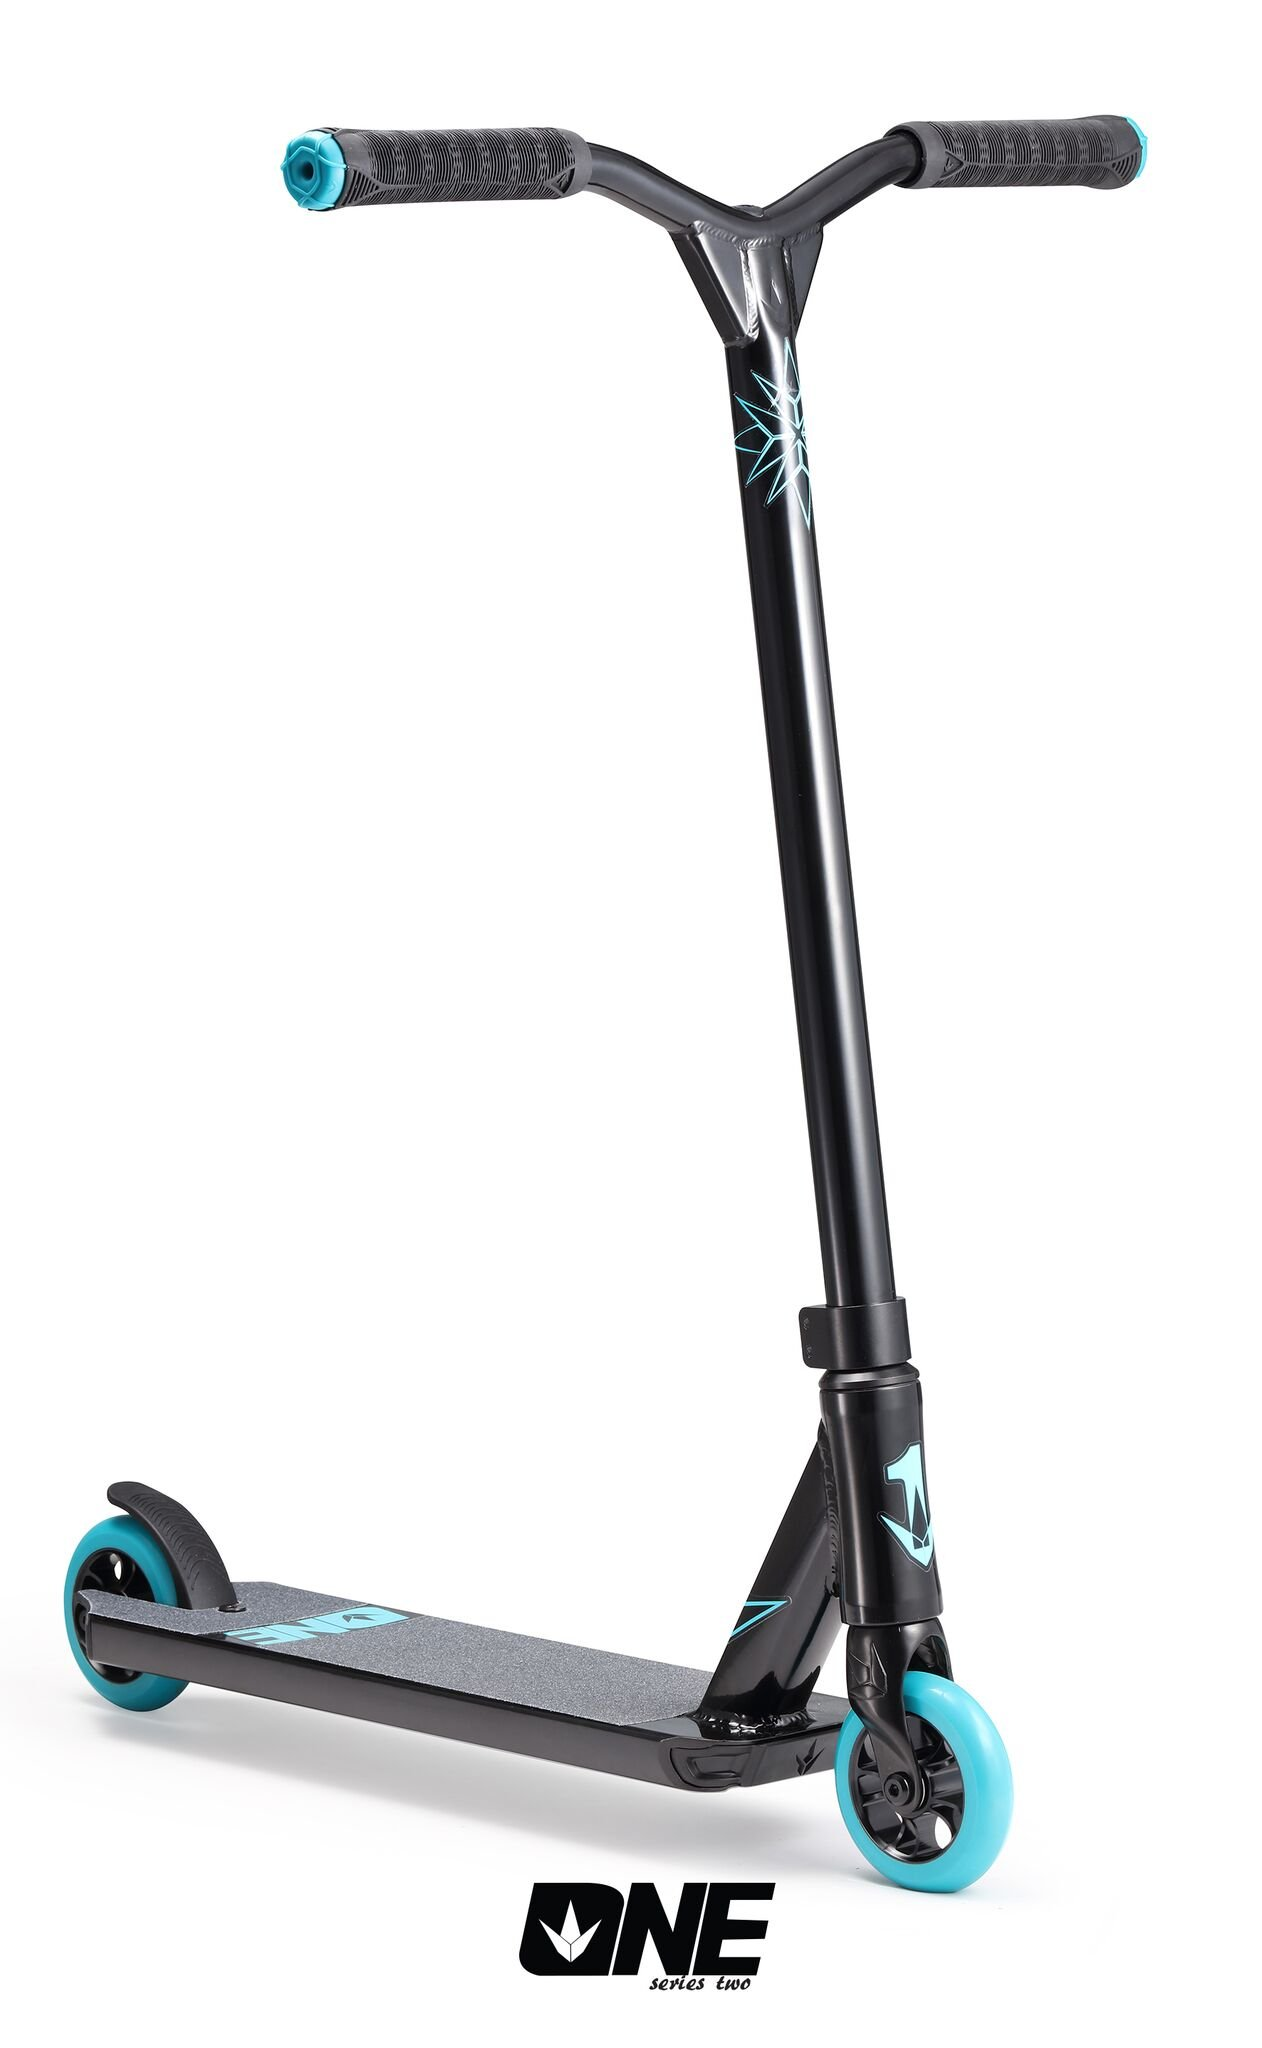 Envy One Series 2 Scooter (Teal) by Envyscooters